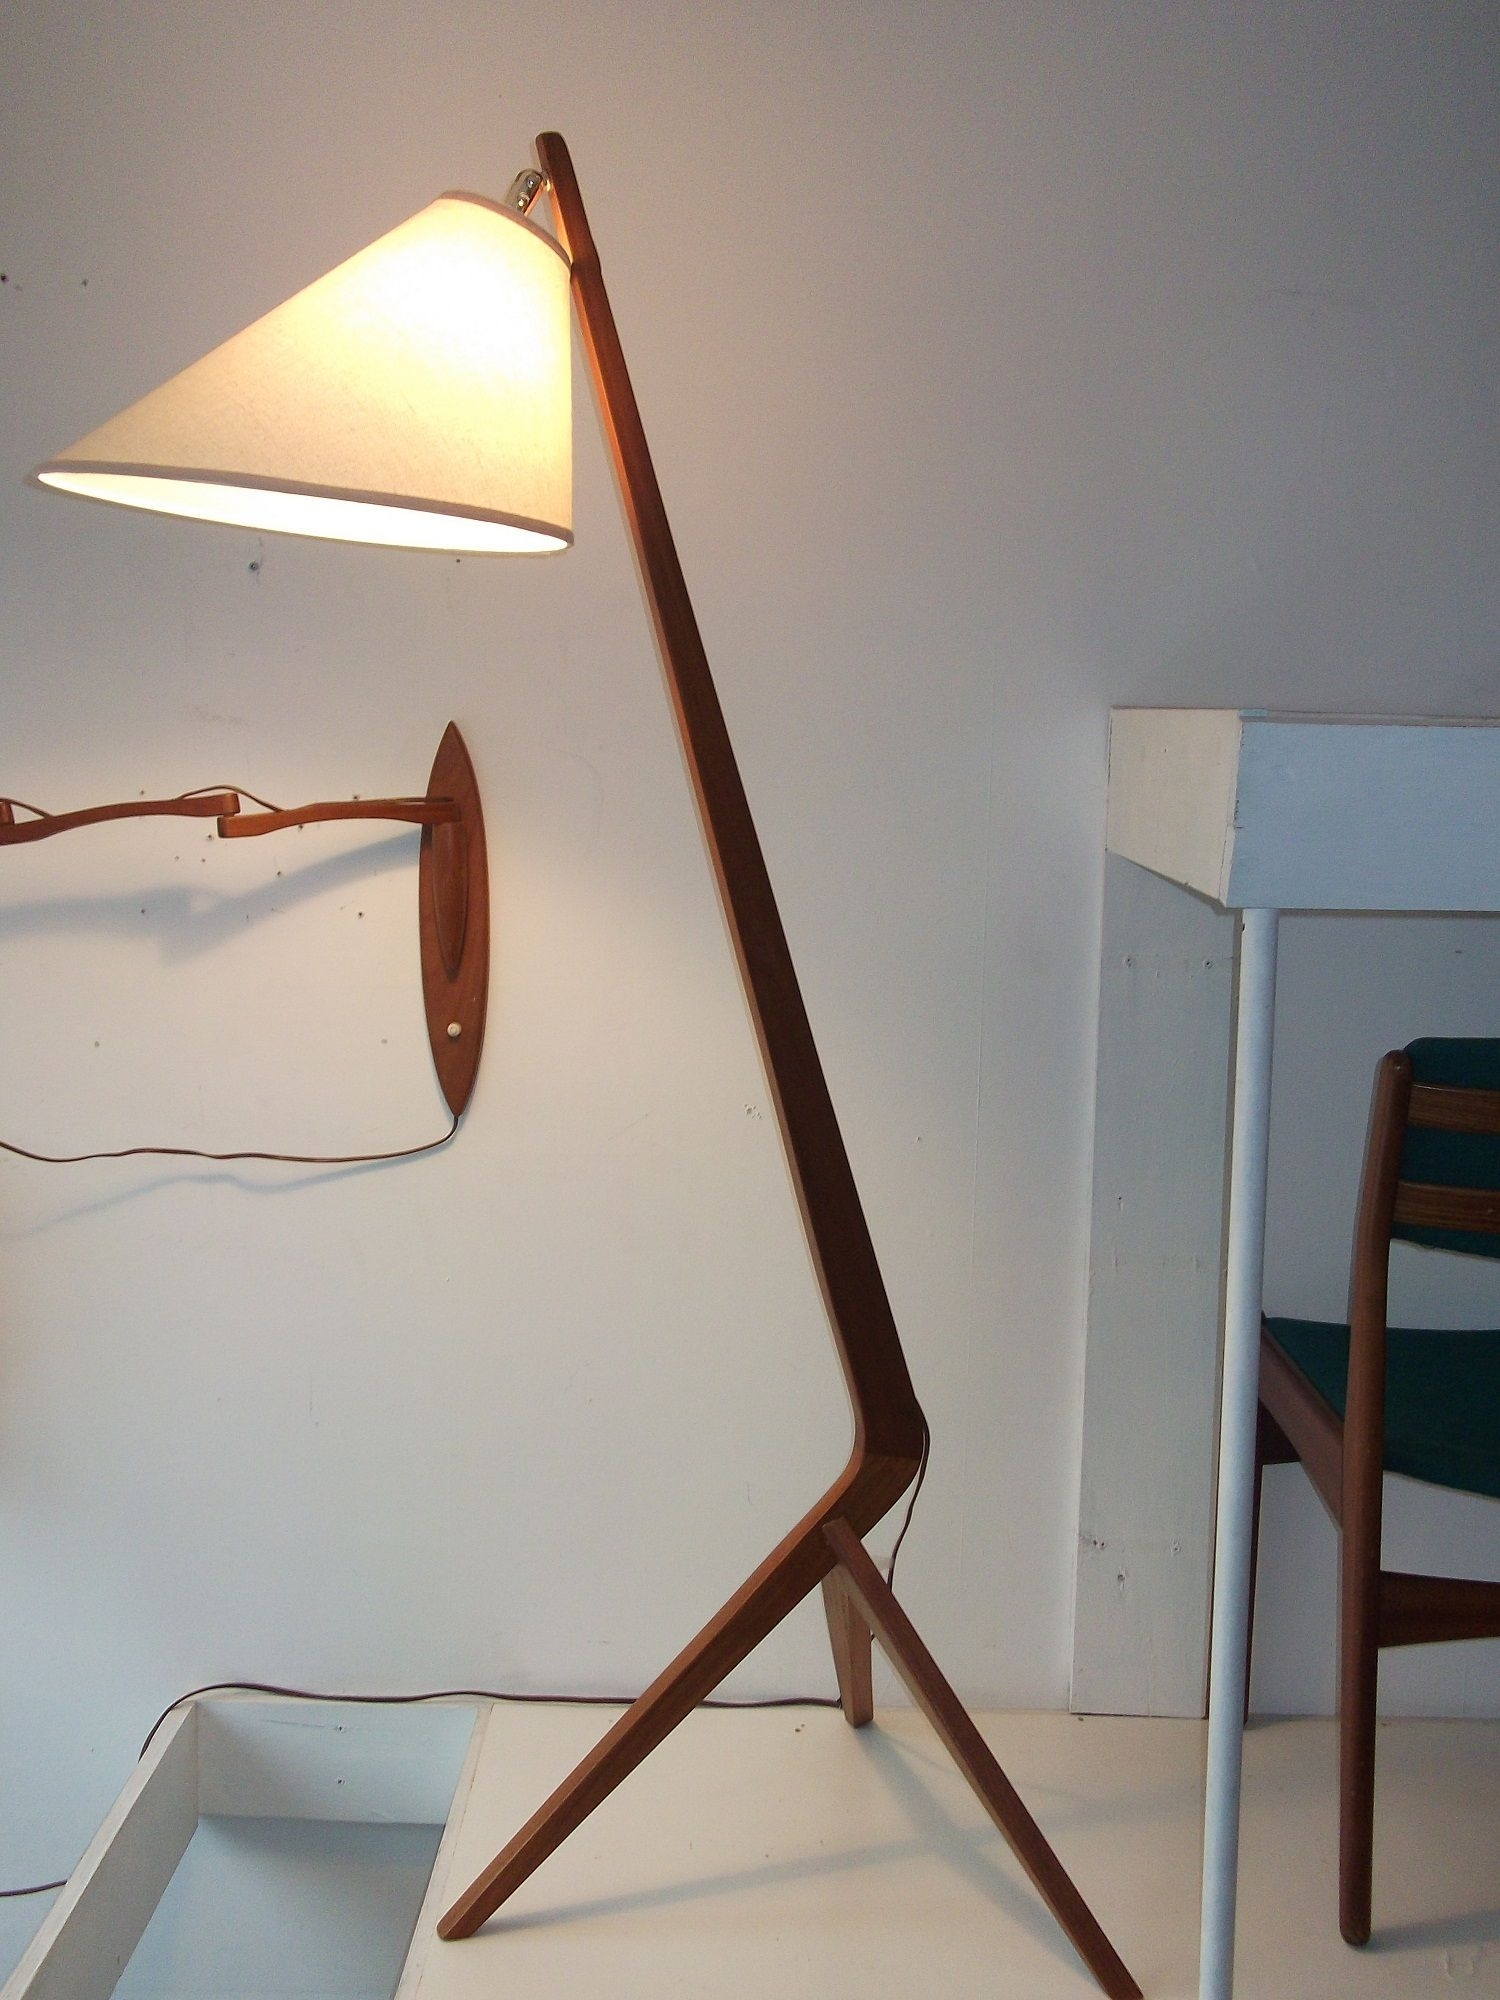 Image of: Mid Century Floor Lamps Ideas On Foter